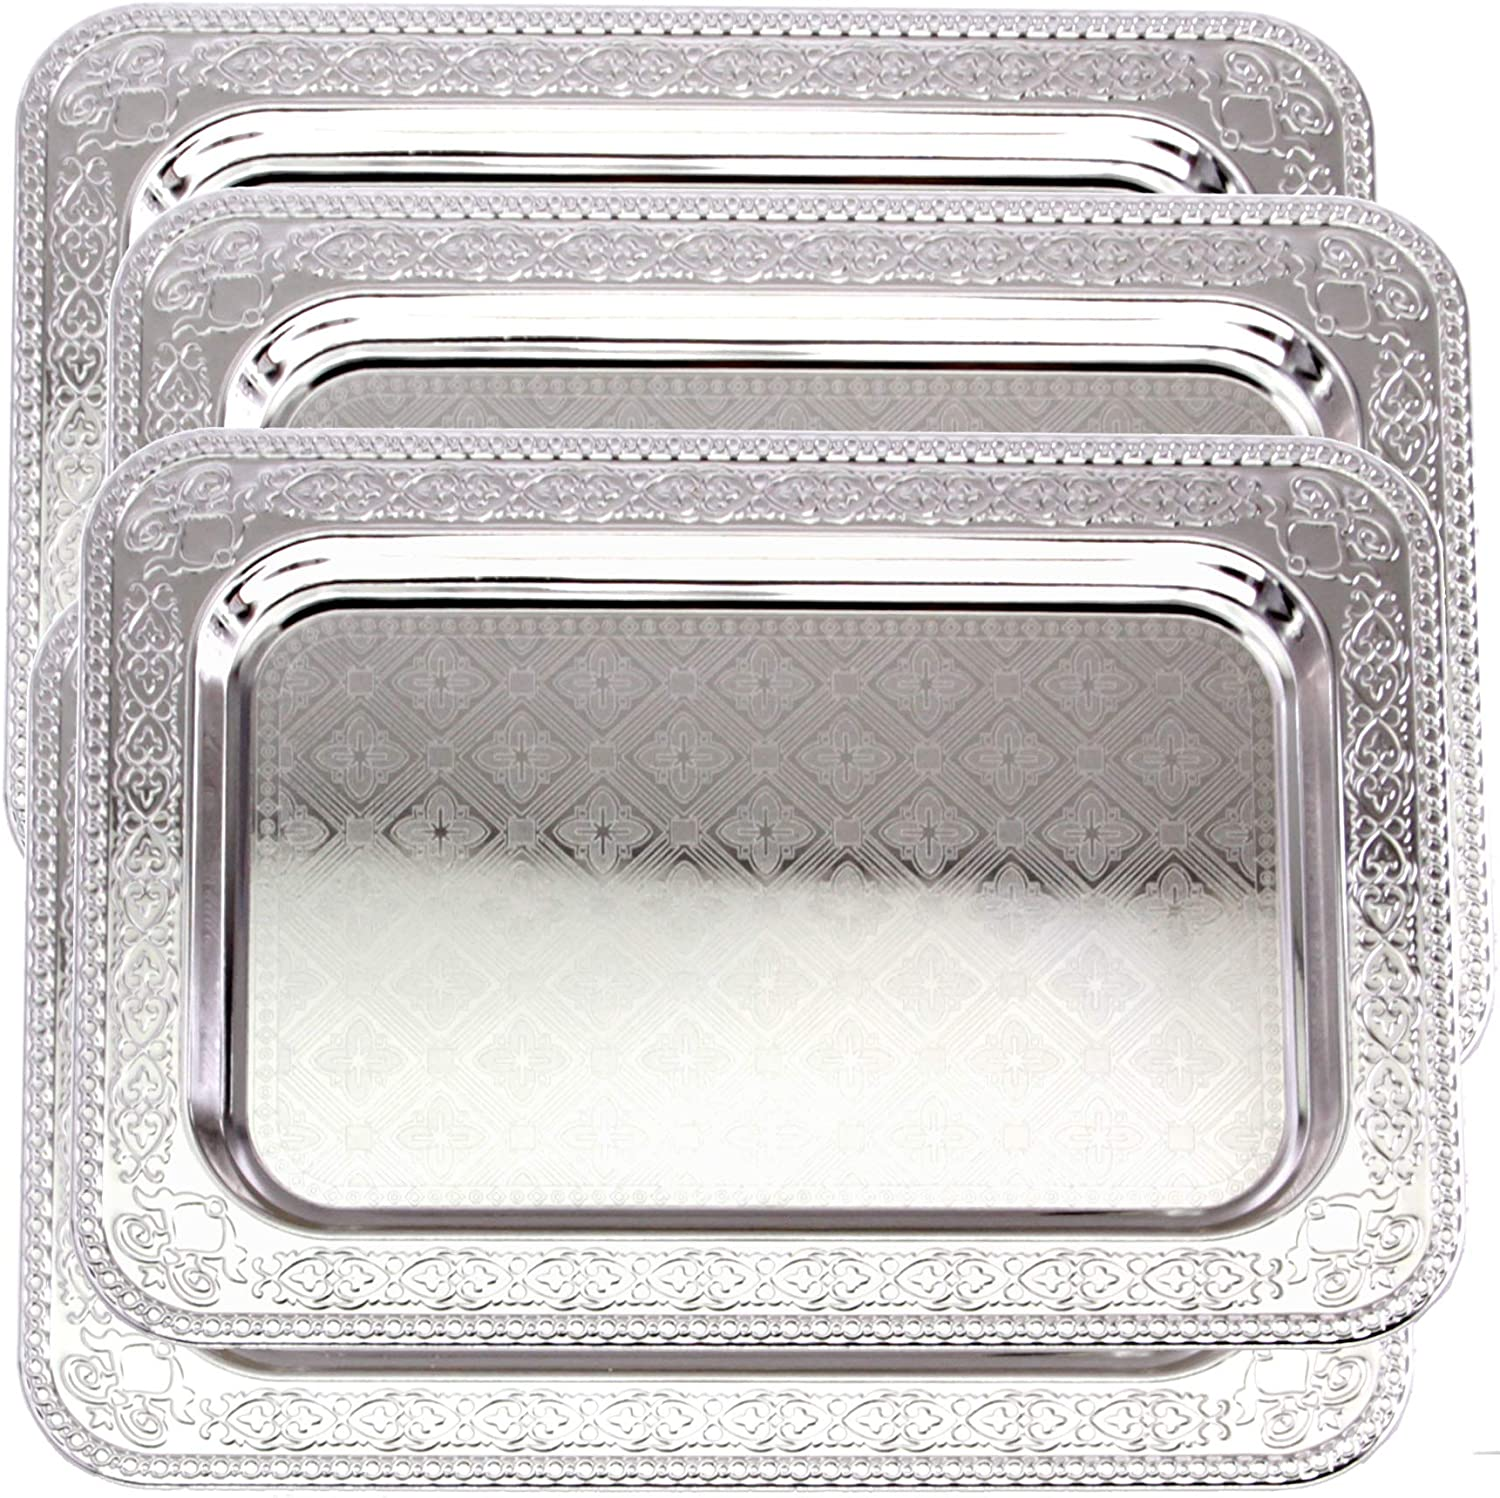 Maro Megastore (Pack of 4) 13.9 Inch x 10 Inch Oblong Chrome Plated Serving Tray Stylish Brick Floral Square Engraved Edge Decorative Party Birthday Wedding Dessert Buffet Wine Platter Plate CC-950